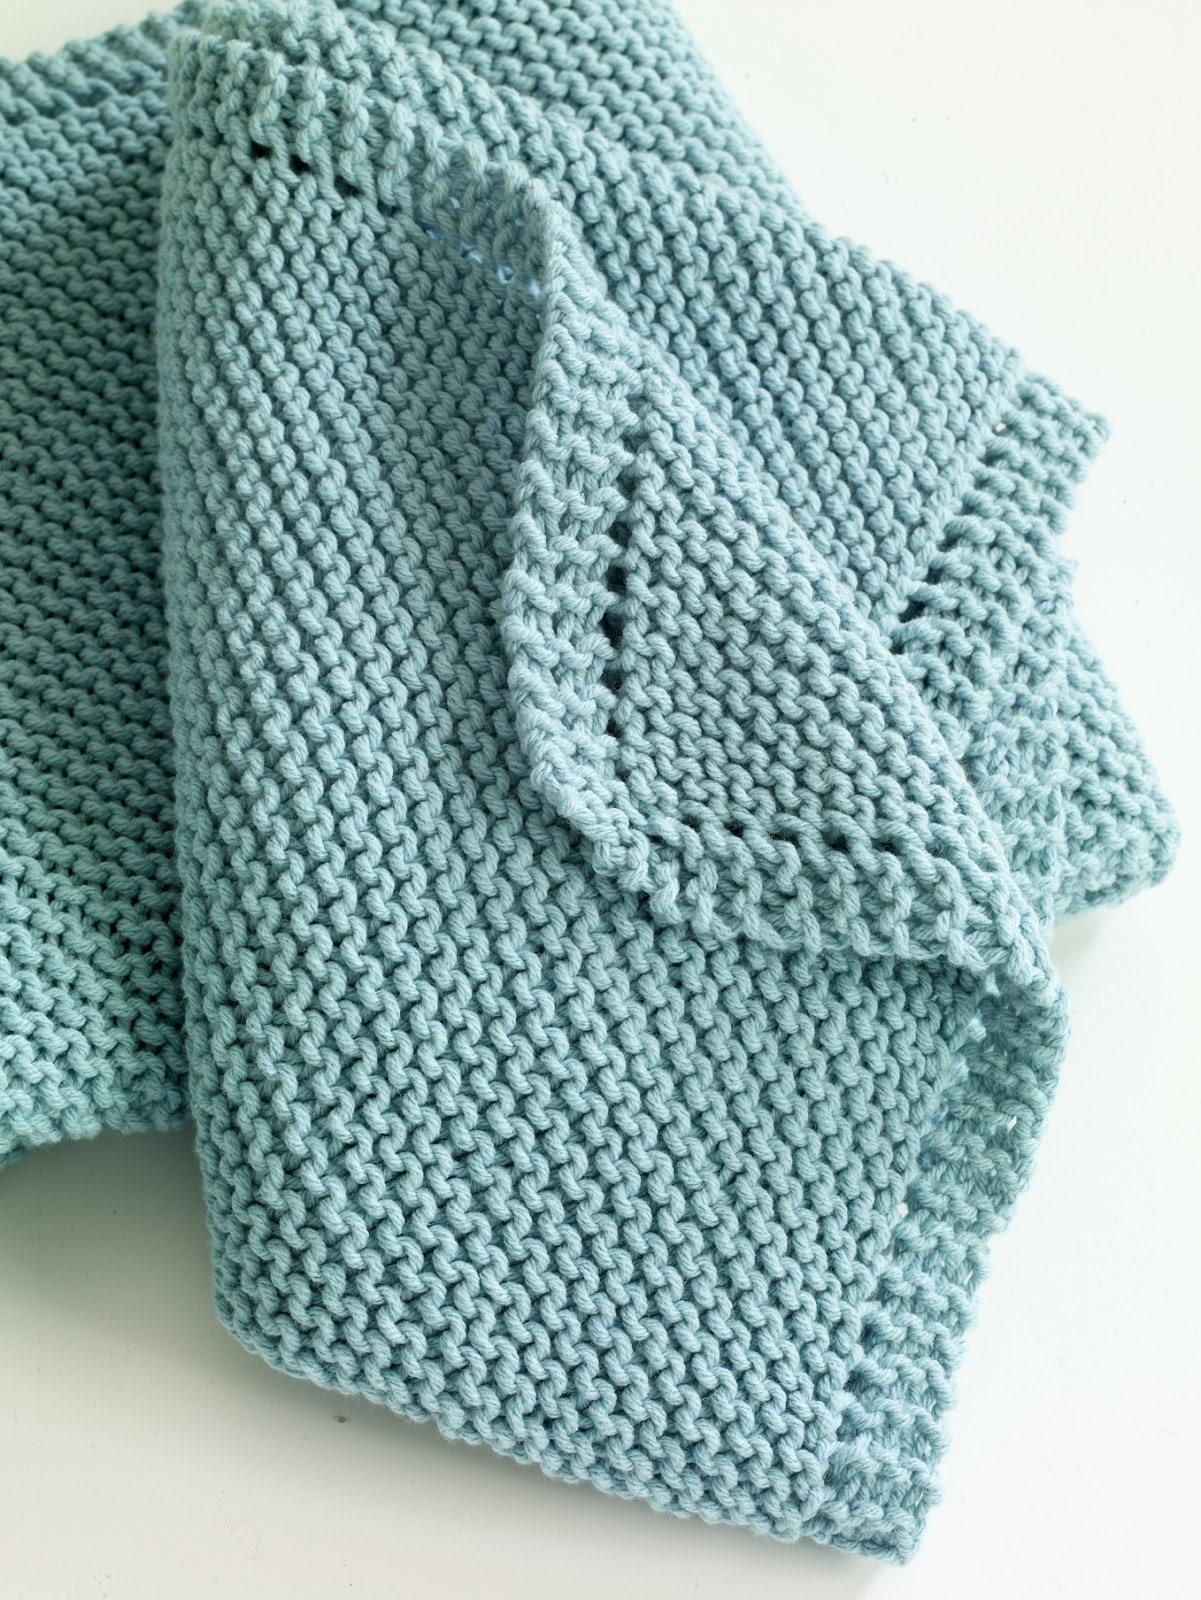 Knitting Pattern For Baby Blanket Easy : Serenity Knits